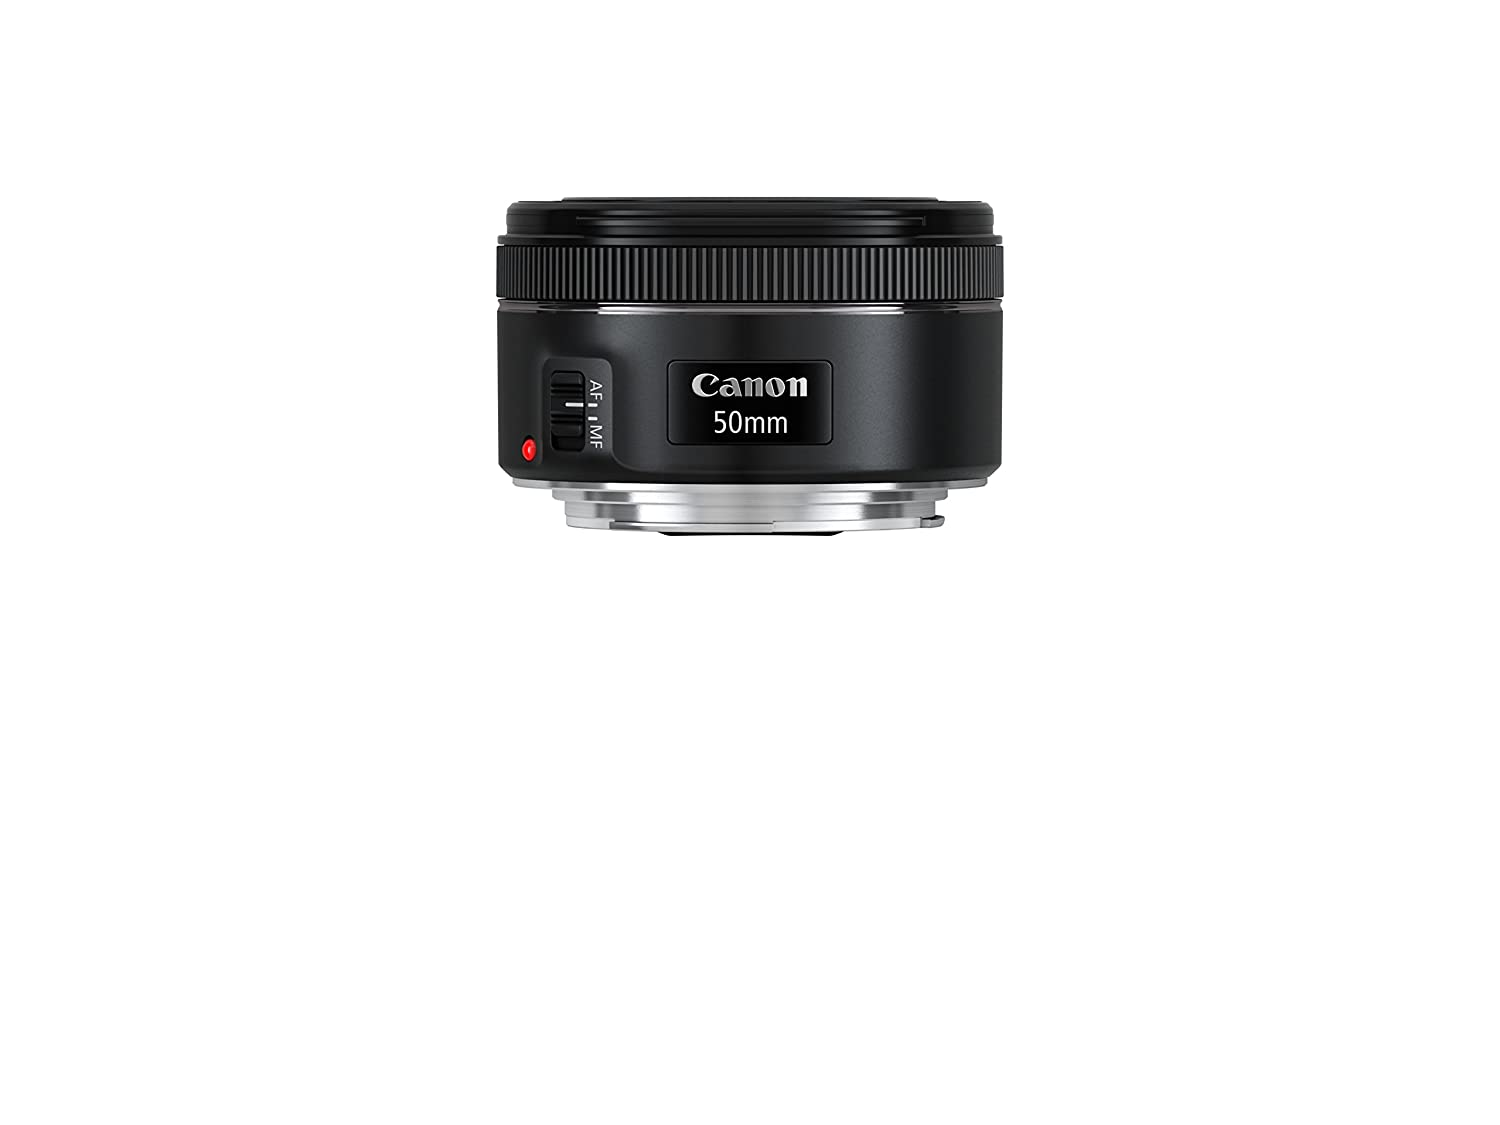 Canon Ef 50mm F 18 Stm Normal Lens For Cameras Fix Yongnuo Camera Photo